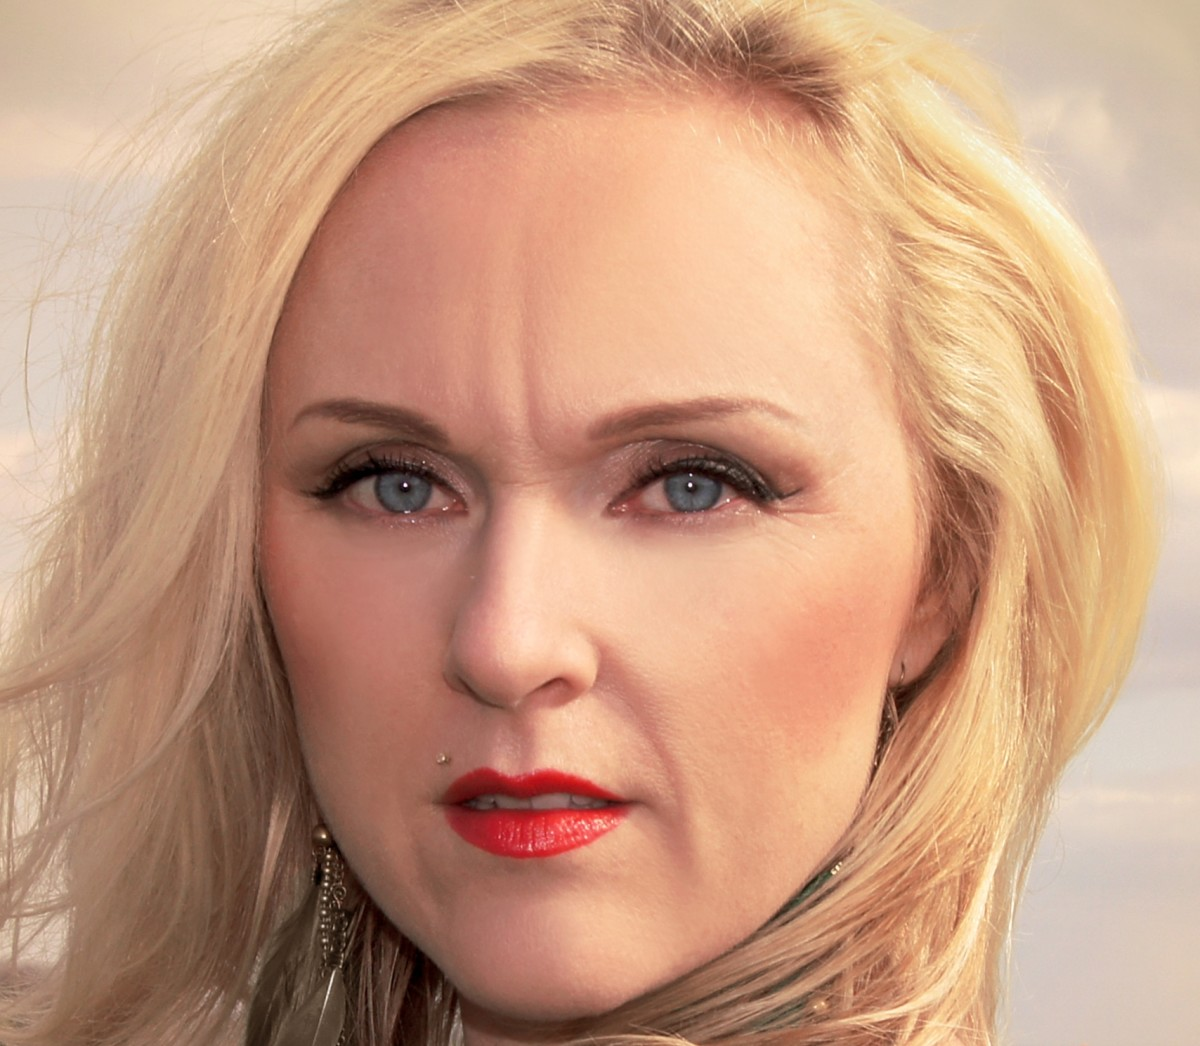 Liv Kristine was the vocalist for Theatre of Tragedy from 1993 through 2003. She would then join the band called Leaves' Eyes.